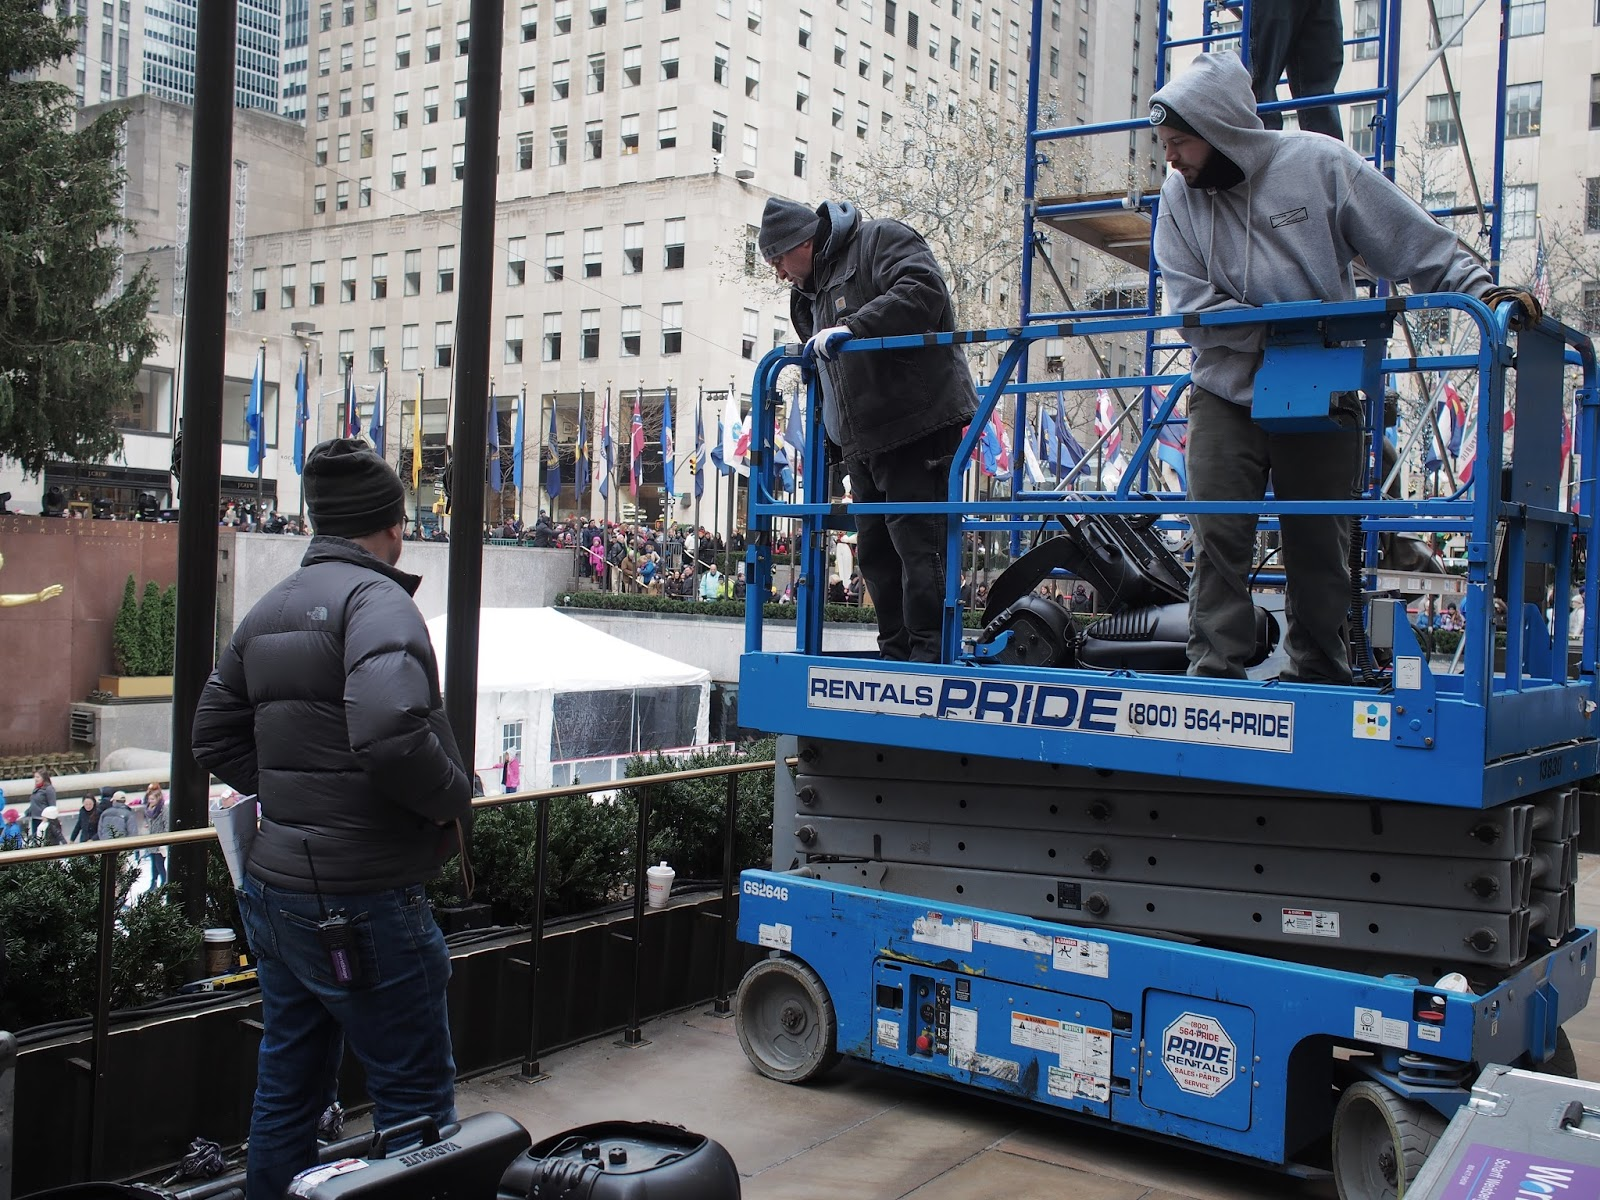 Scaffolding on the Move #scaffoldingonthemove #rockcenter #rockerfellercenter #christmastree 2014